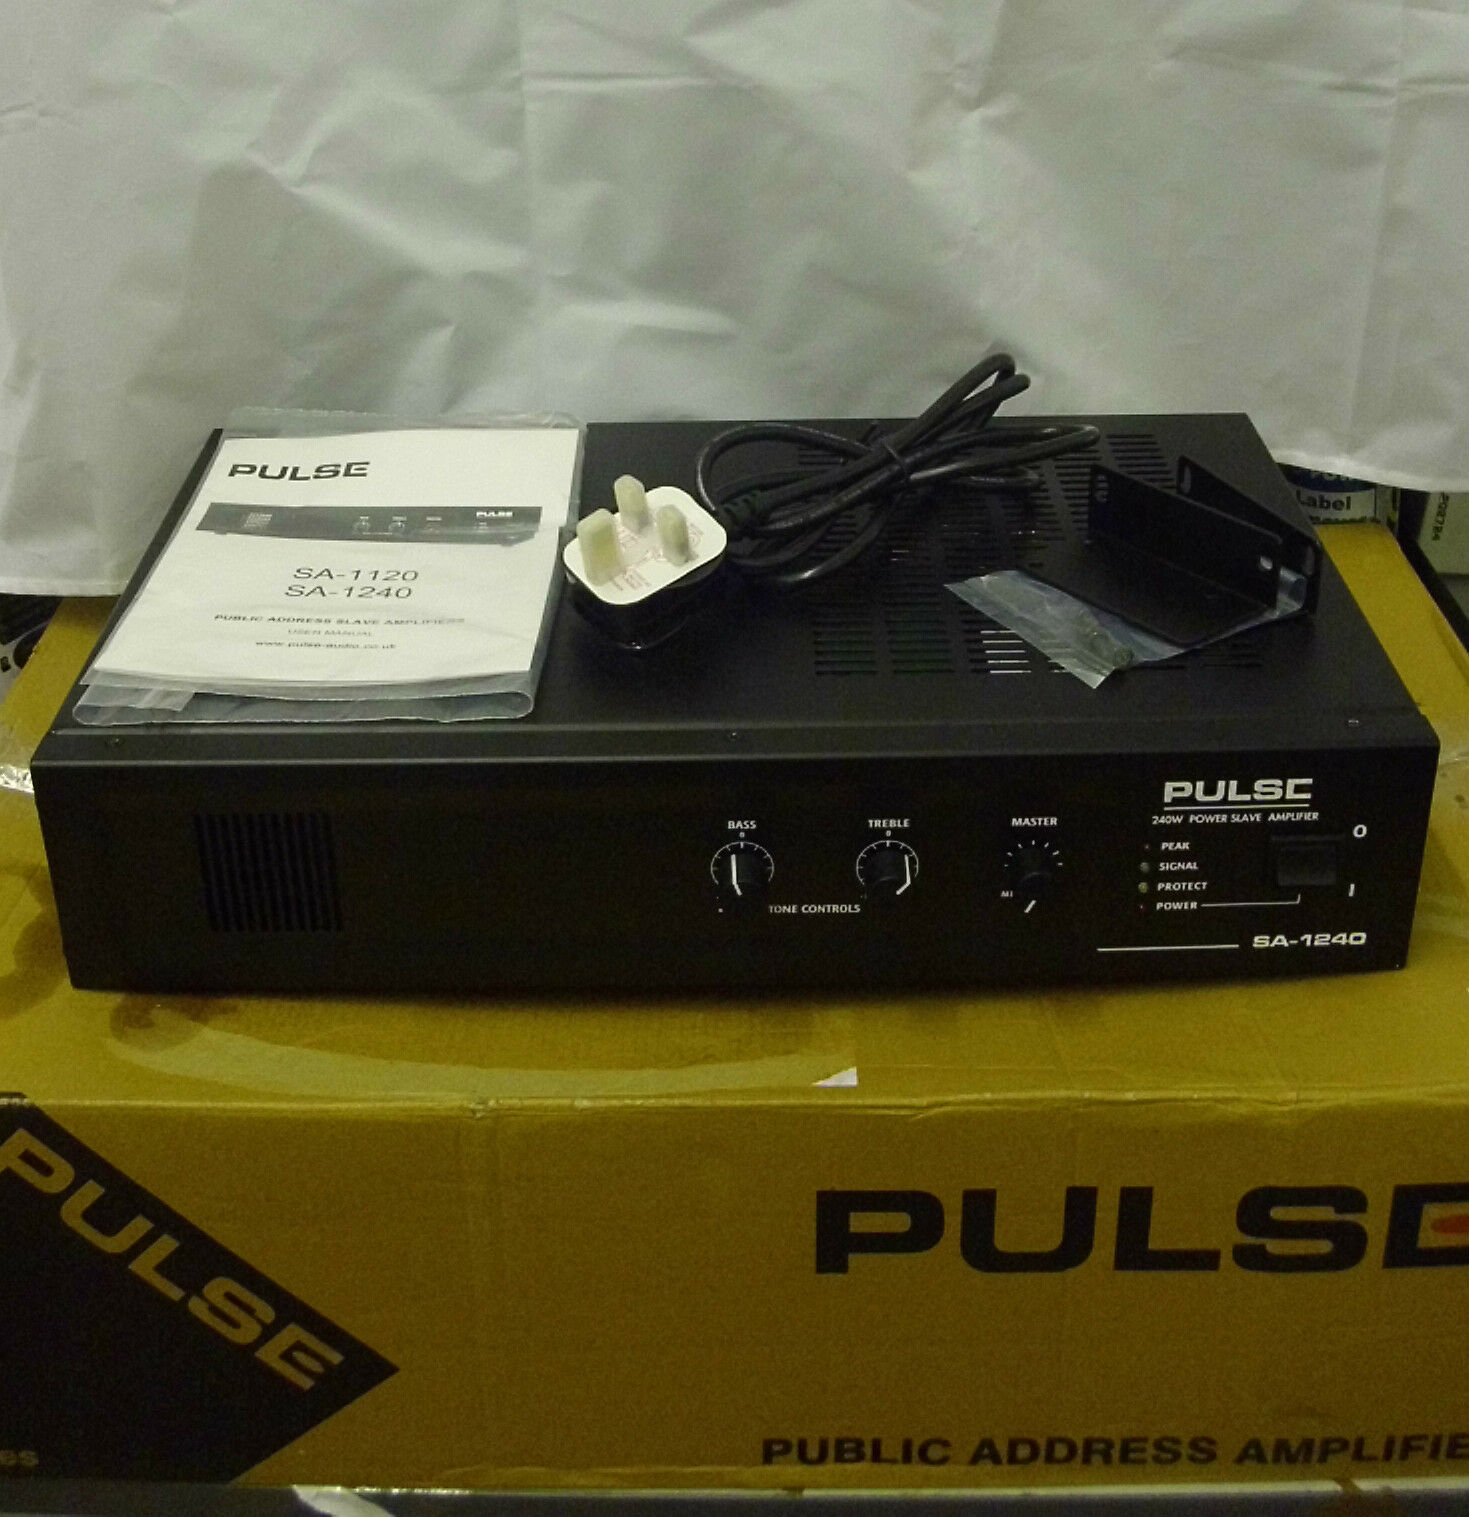 Pulse Sa 1240 Slave Amplifier 240w Jw905 C3 10000 Picclick Uk Mosfet 1 Of 1only 2 Available